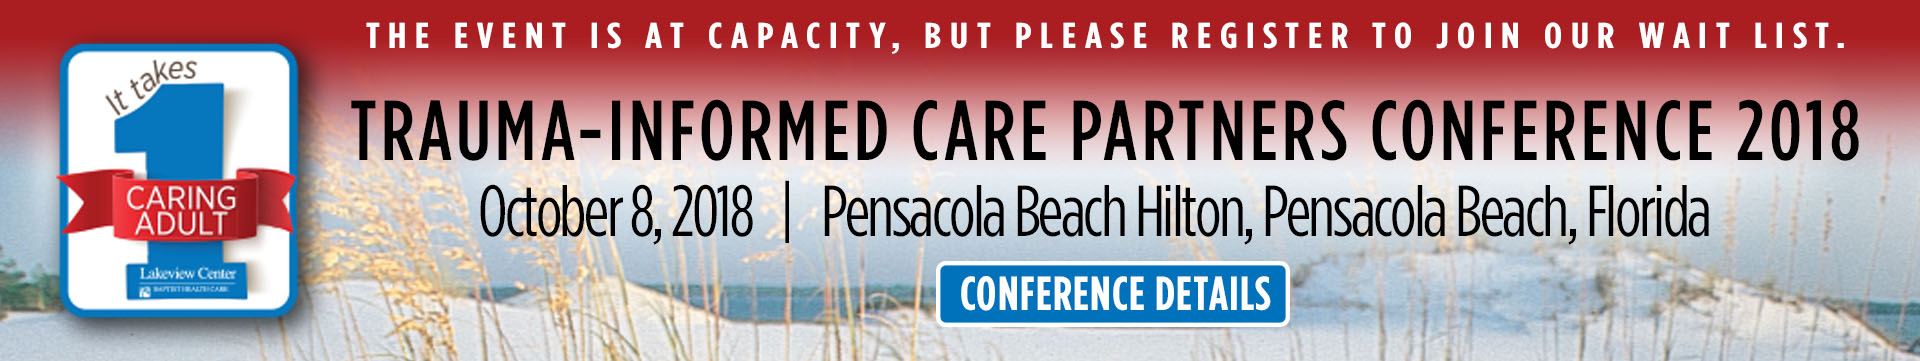 Trauma-Informed Care Partners Conference